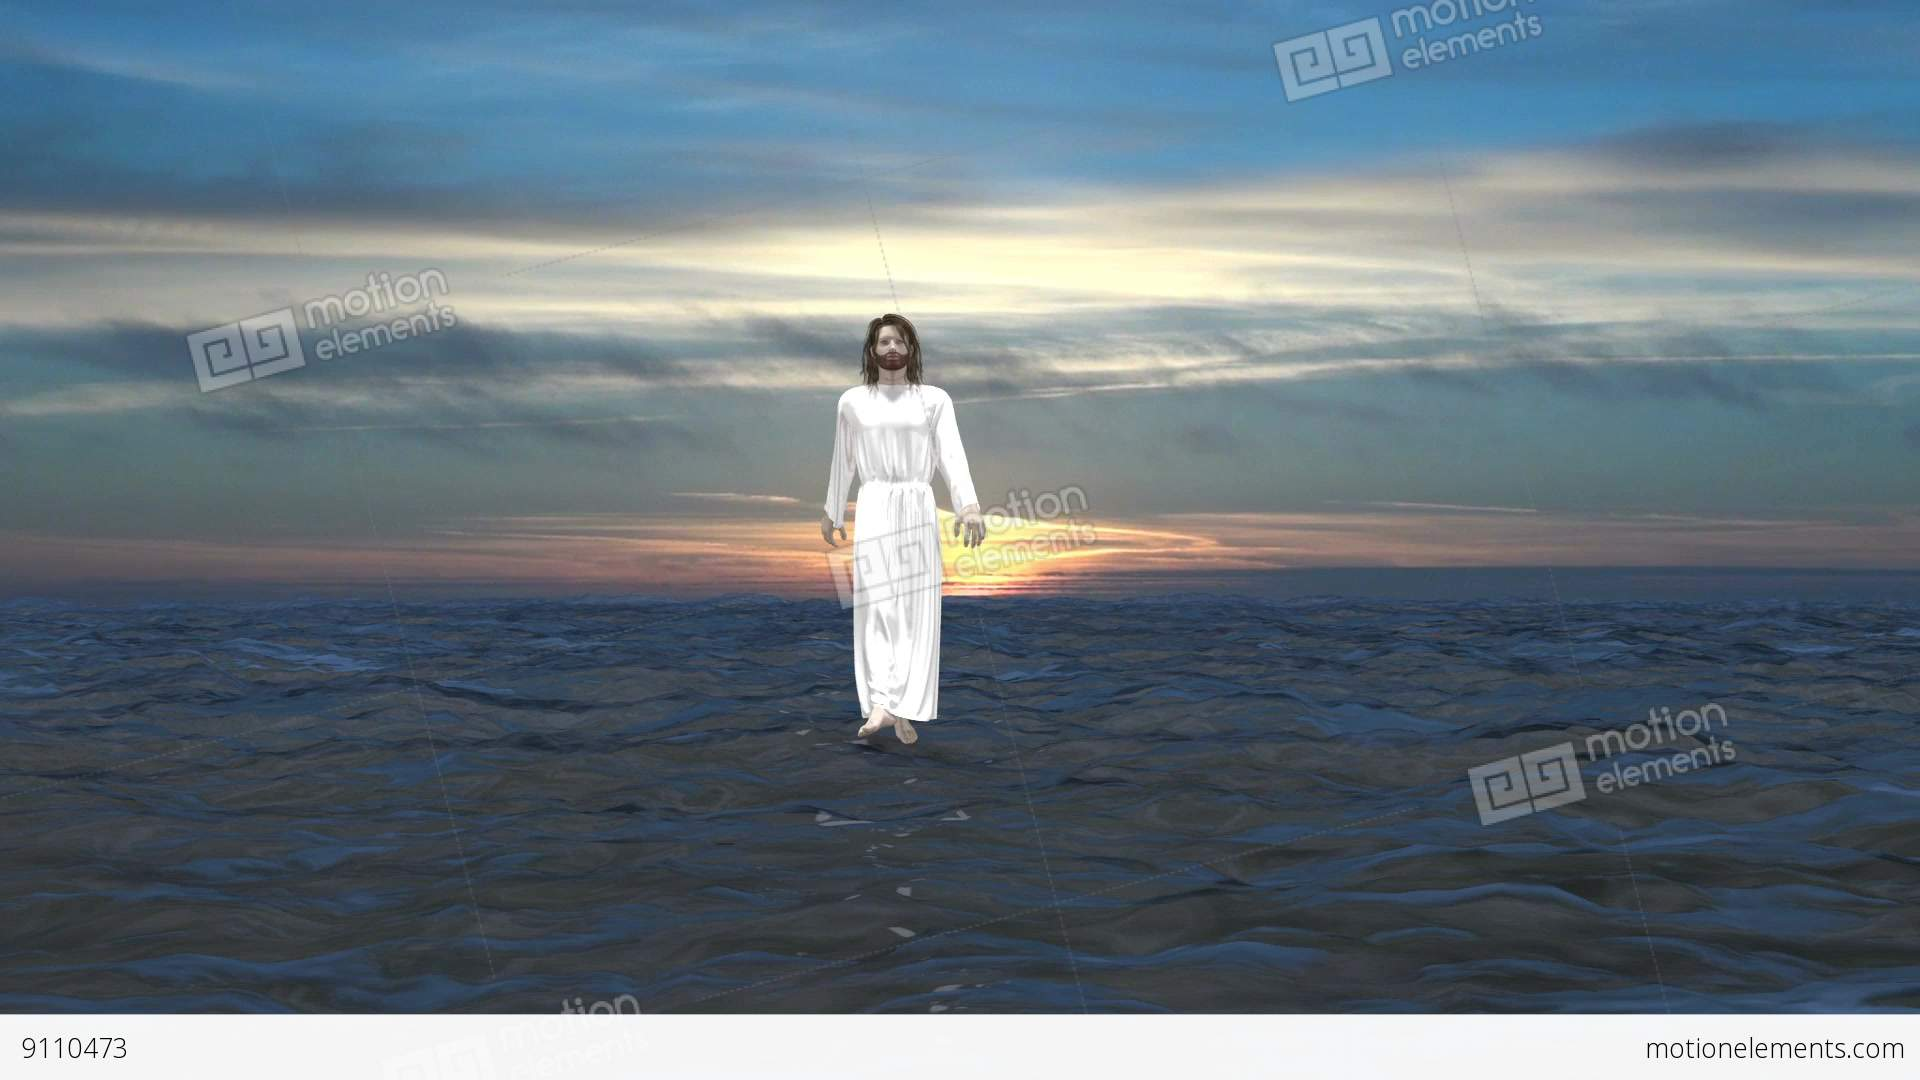 religion and water Religions, water in in most religious traditions, water is basic to physical and spiritual life, symbolizing purification, rebirth, and fertility this concept continues to play a.